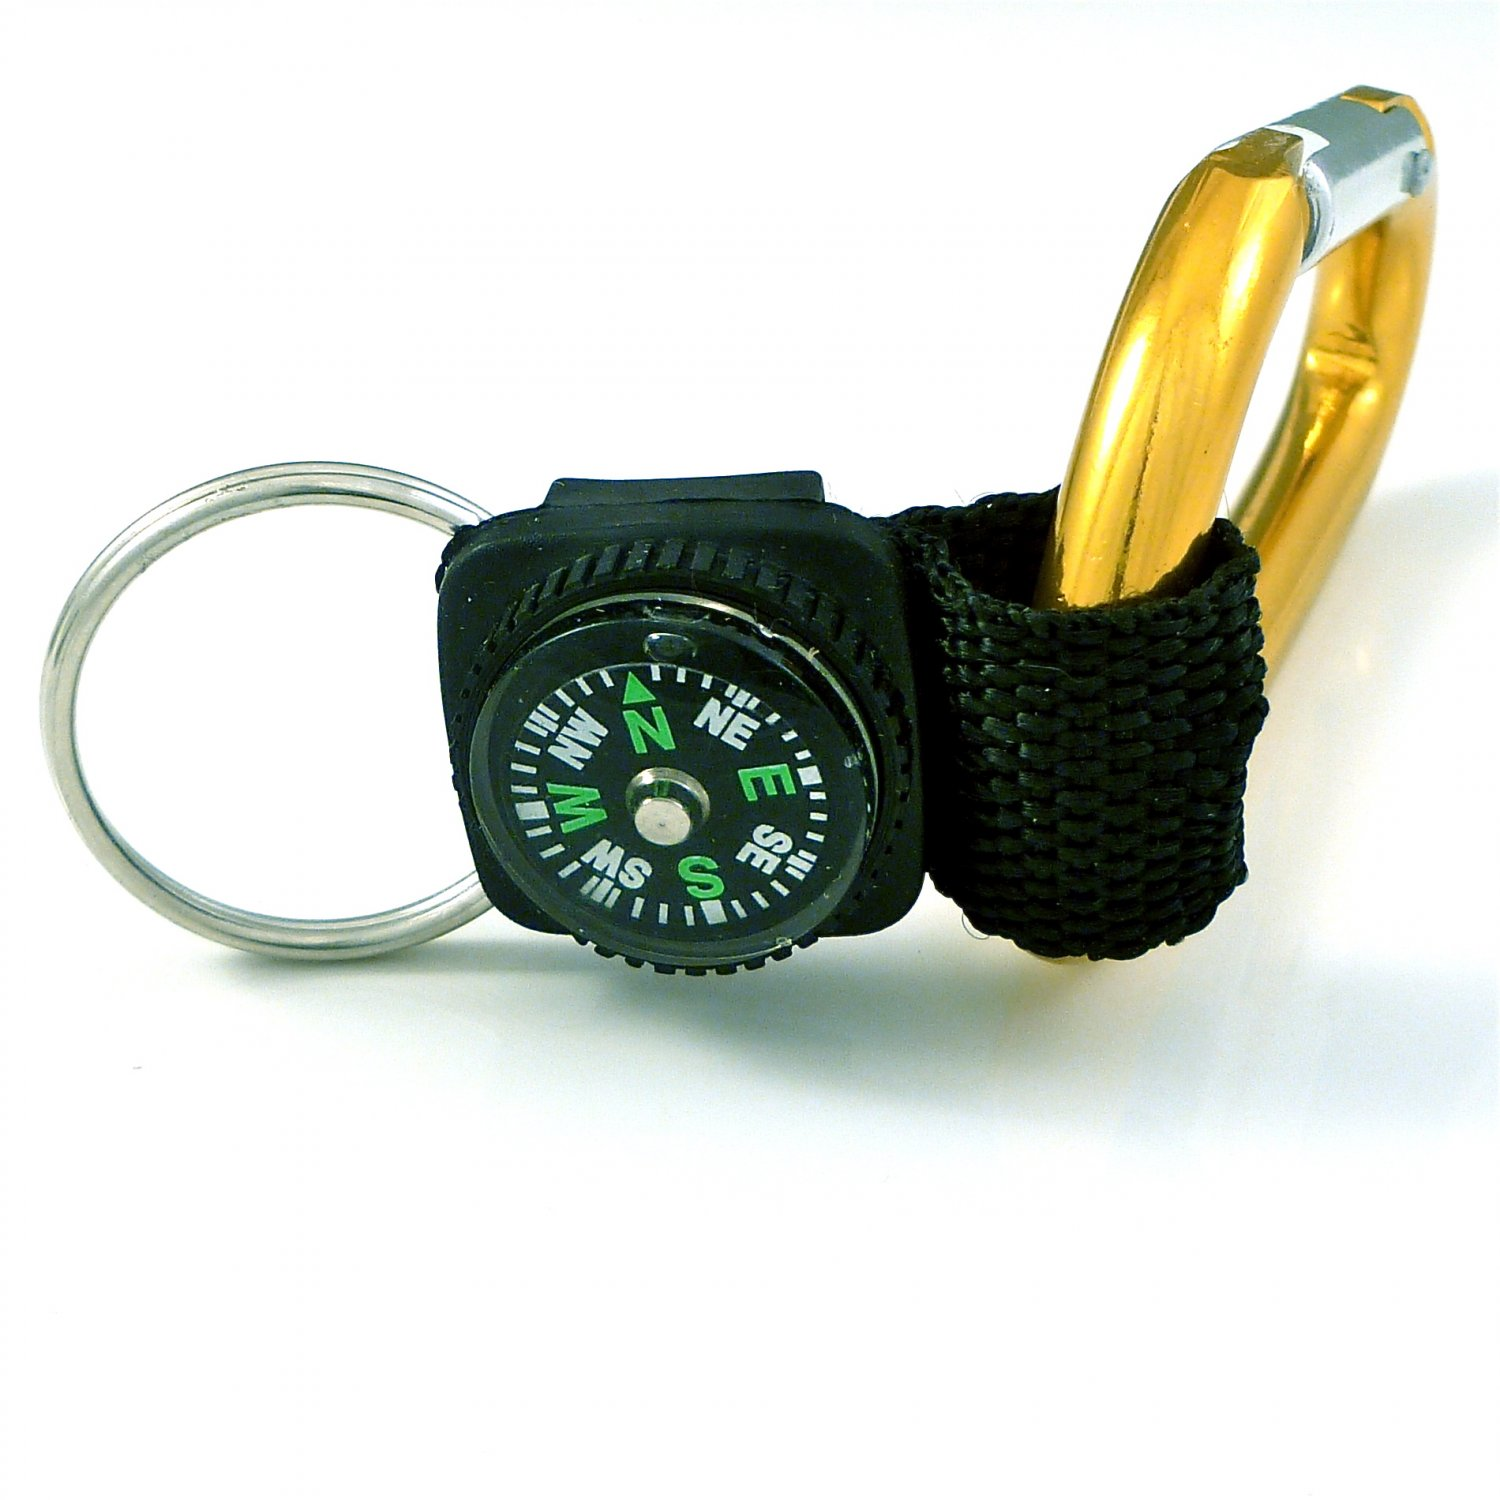 Carabiner Key Chain with Compass -04